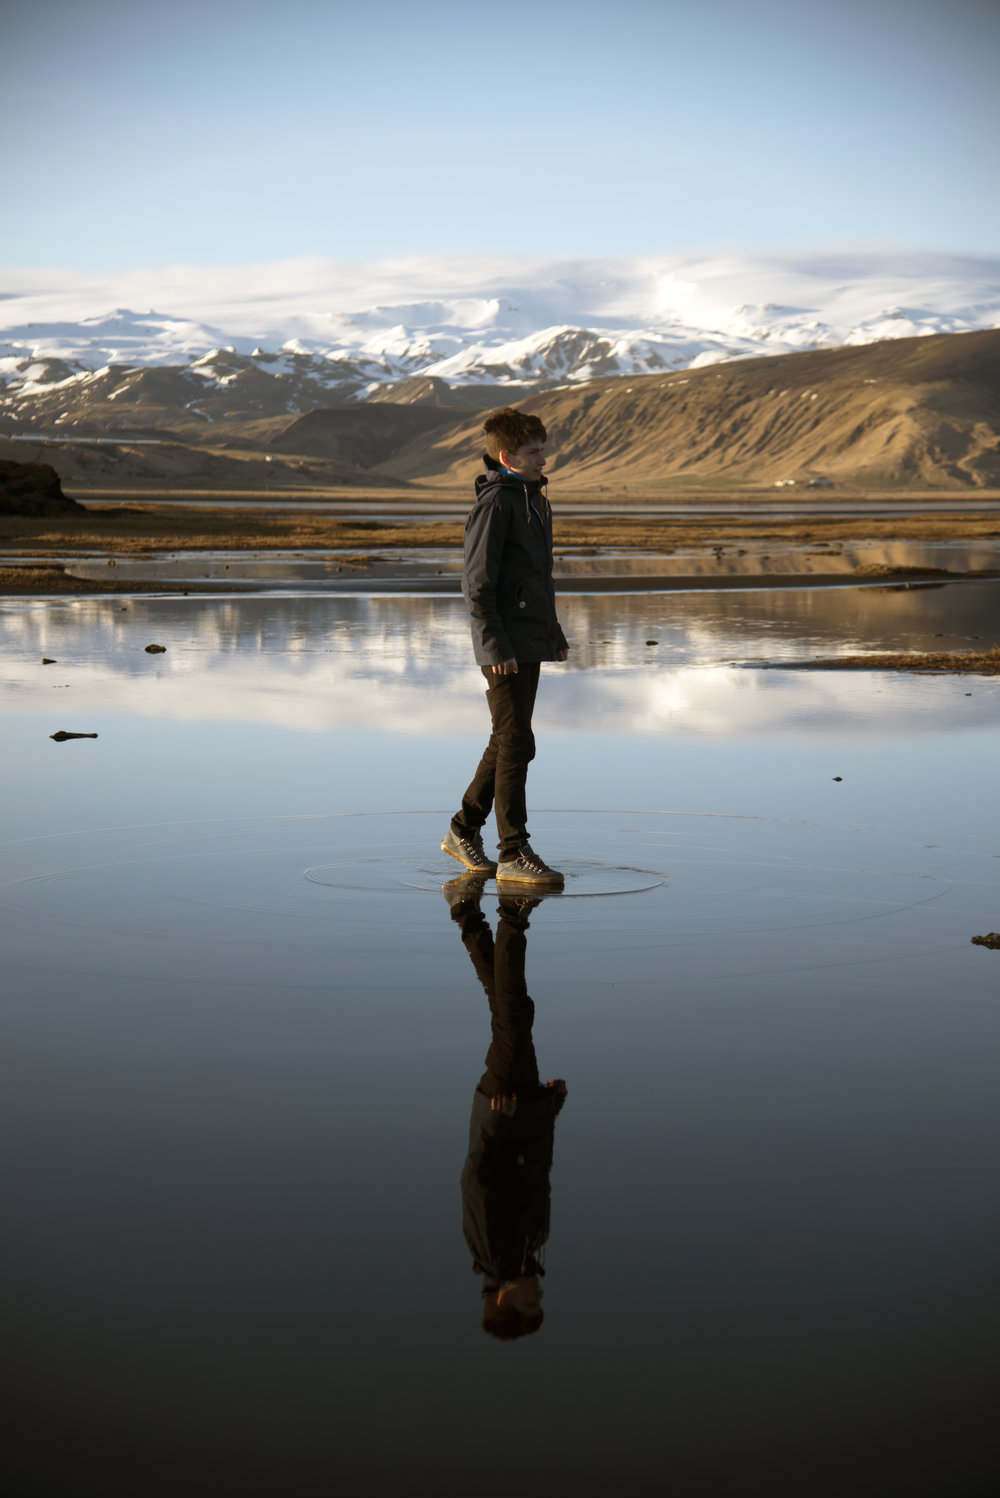 Joe Standing on Reflection in Iceland.jpg